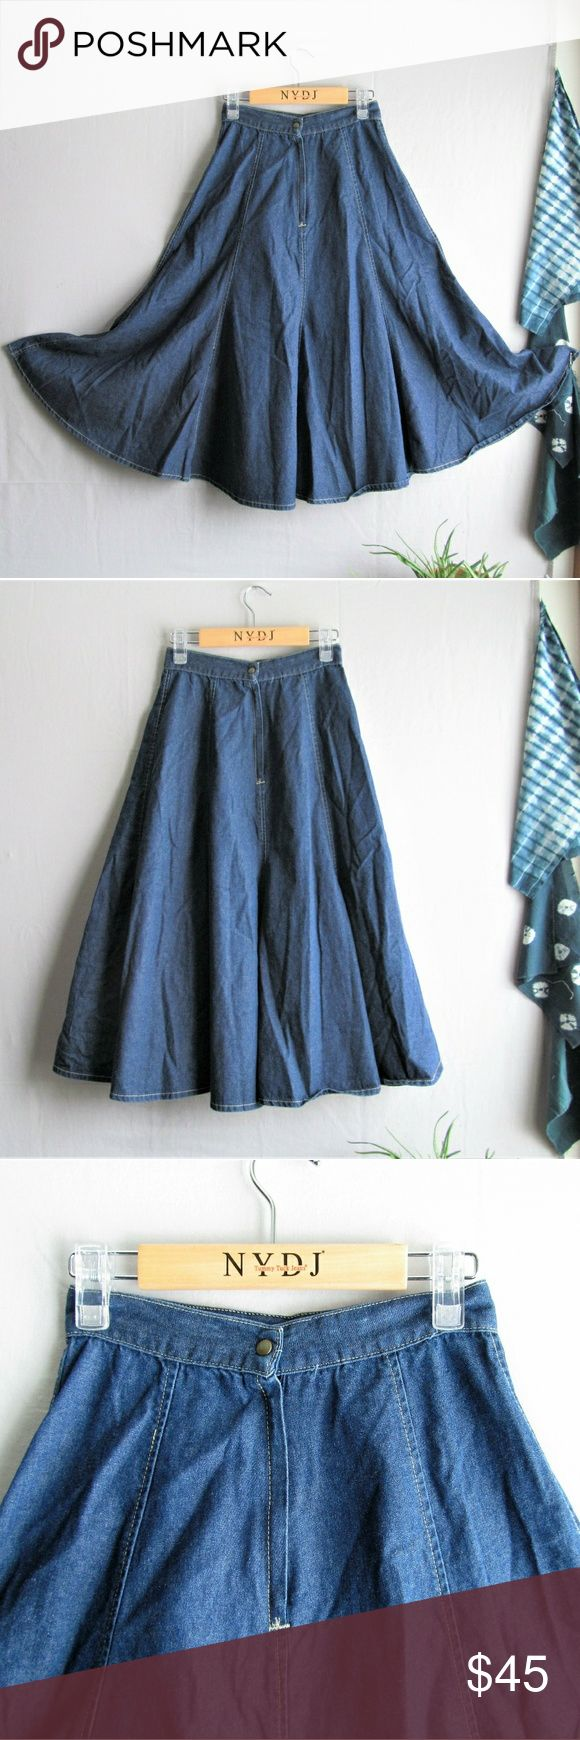 """Vintage Sears 70s full flared denim midi skirt This skirt is amazing!! Vintage 1970s sears catalog full denim skirt in midi length, medium wash, with an even fuller flared hem... stunning snap closure at the natural waist. There is no stretch, this skirt was made to fit an almost wasp waist silhouette. Fits an xxs to an xs. Please refer to measurements♡  Measurements taken flat  Waistband 12.75""""  Length 30.5""""  Get ready to be featured on a fashion blog when you wear this out. I'm serious…"""